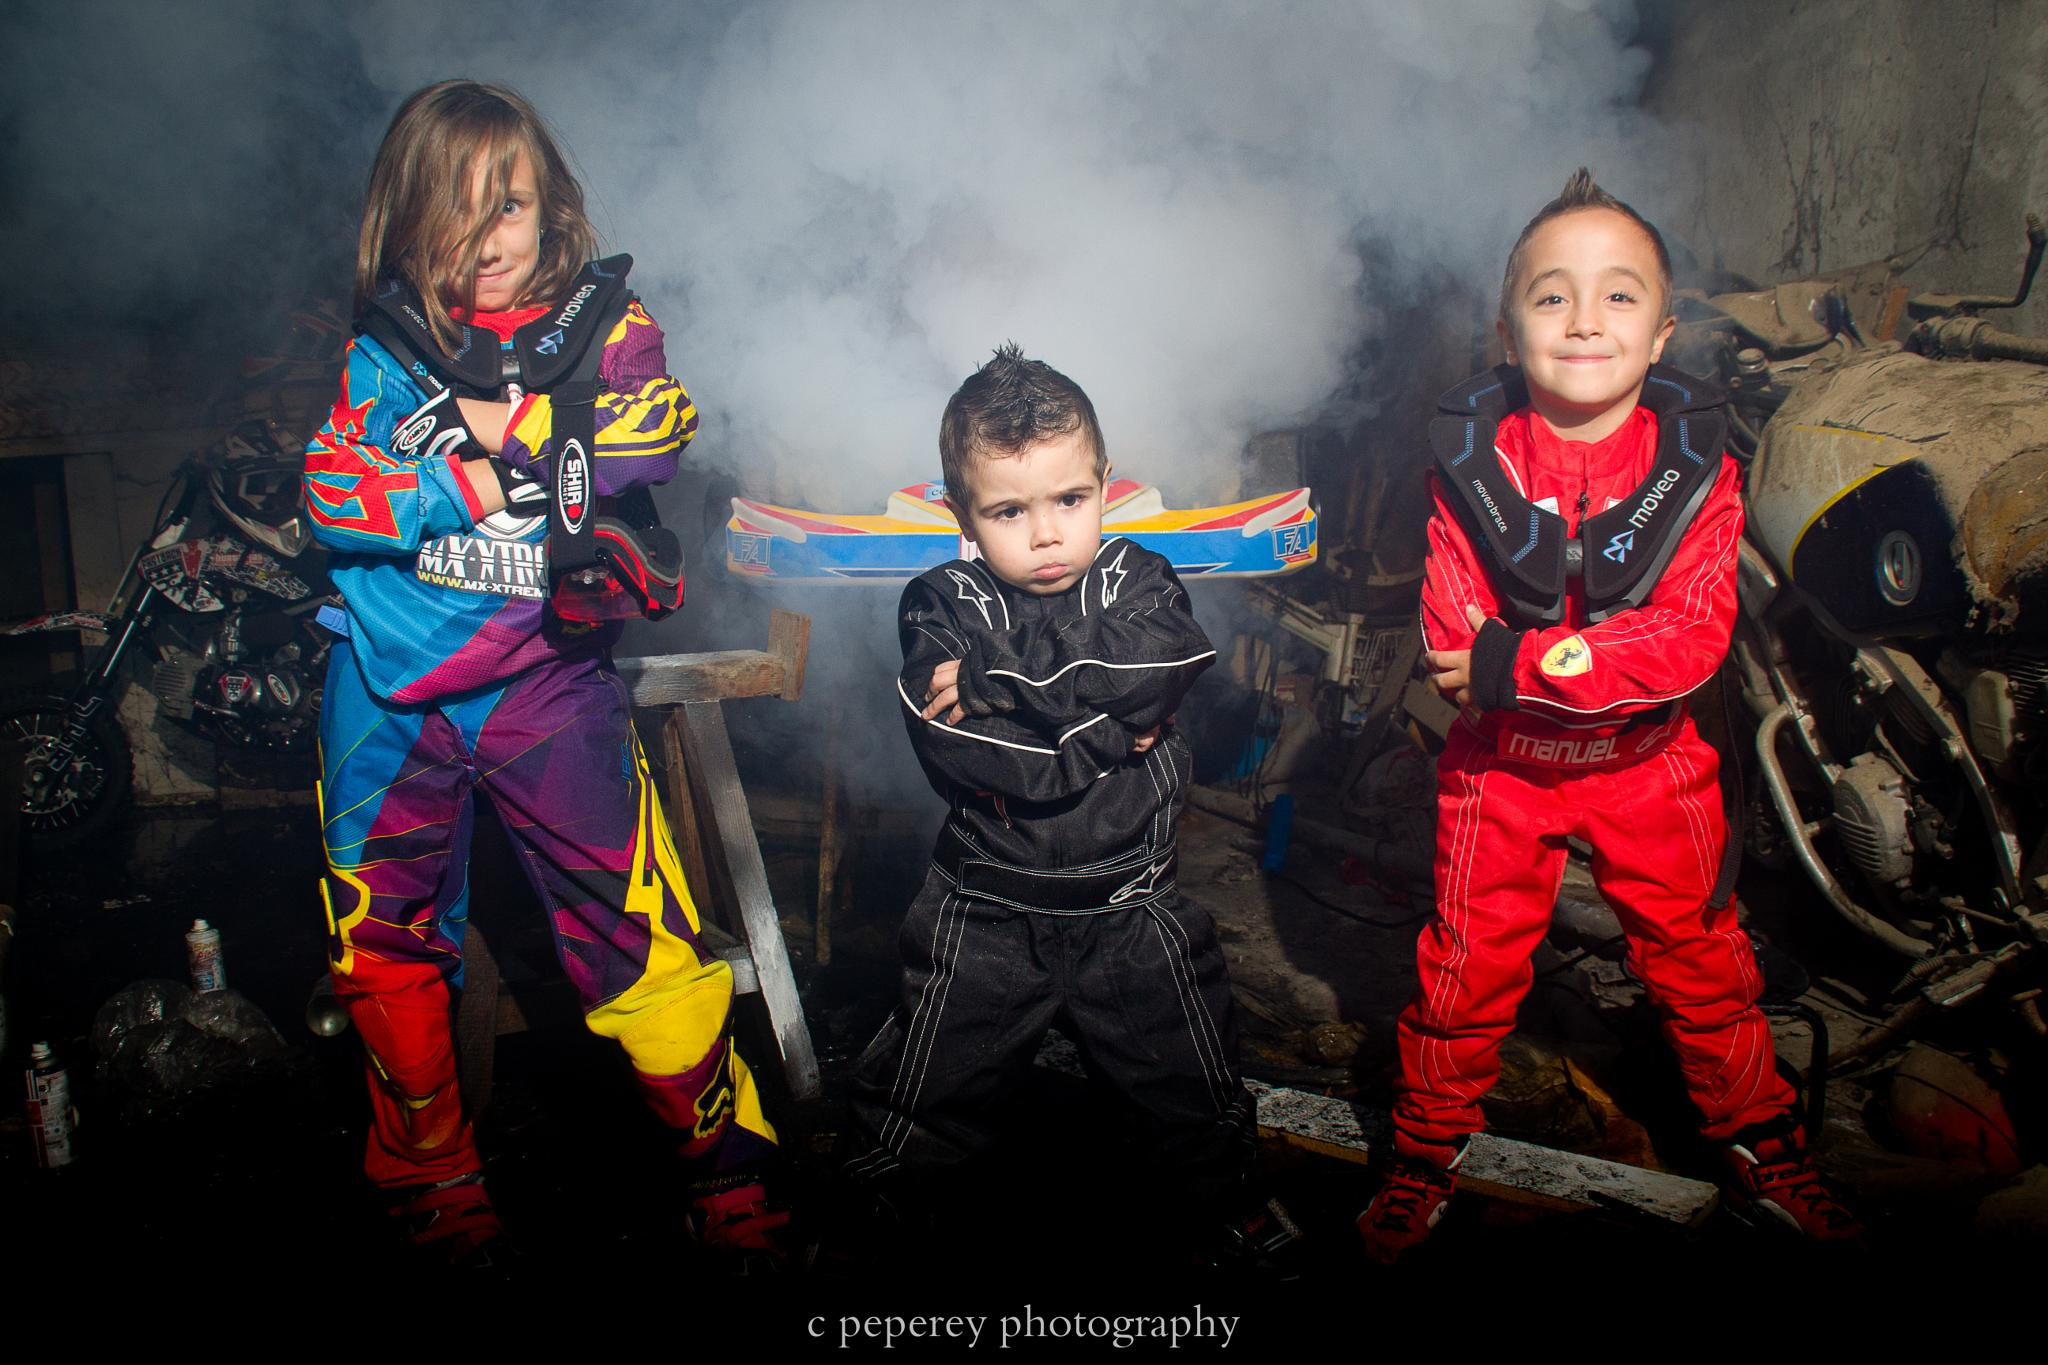 Cantera Motocross y kart by pepereyphotography